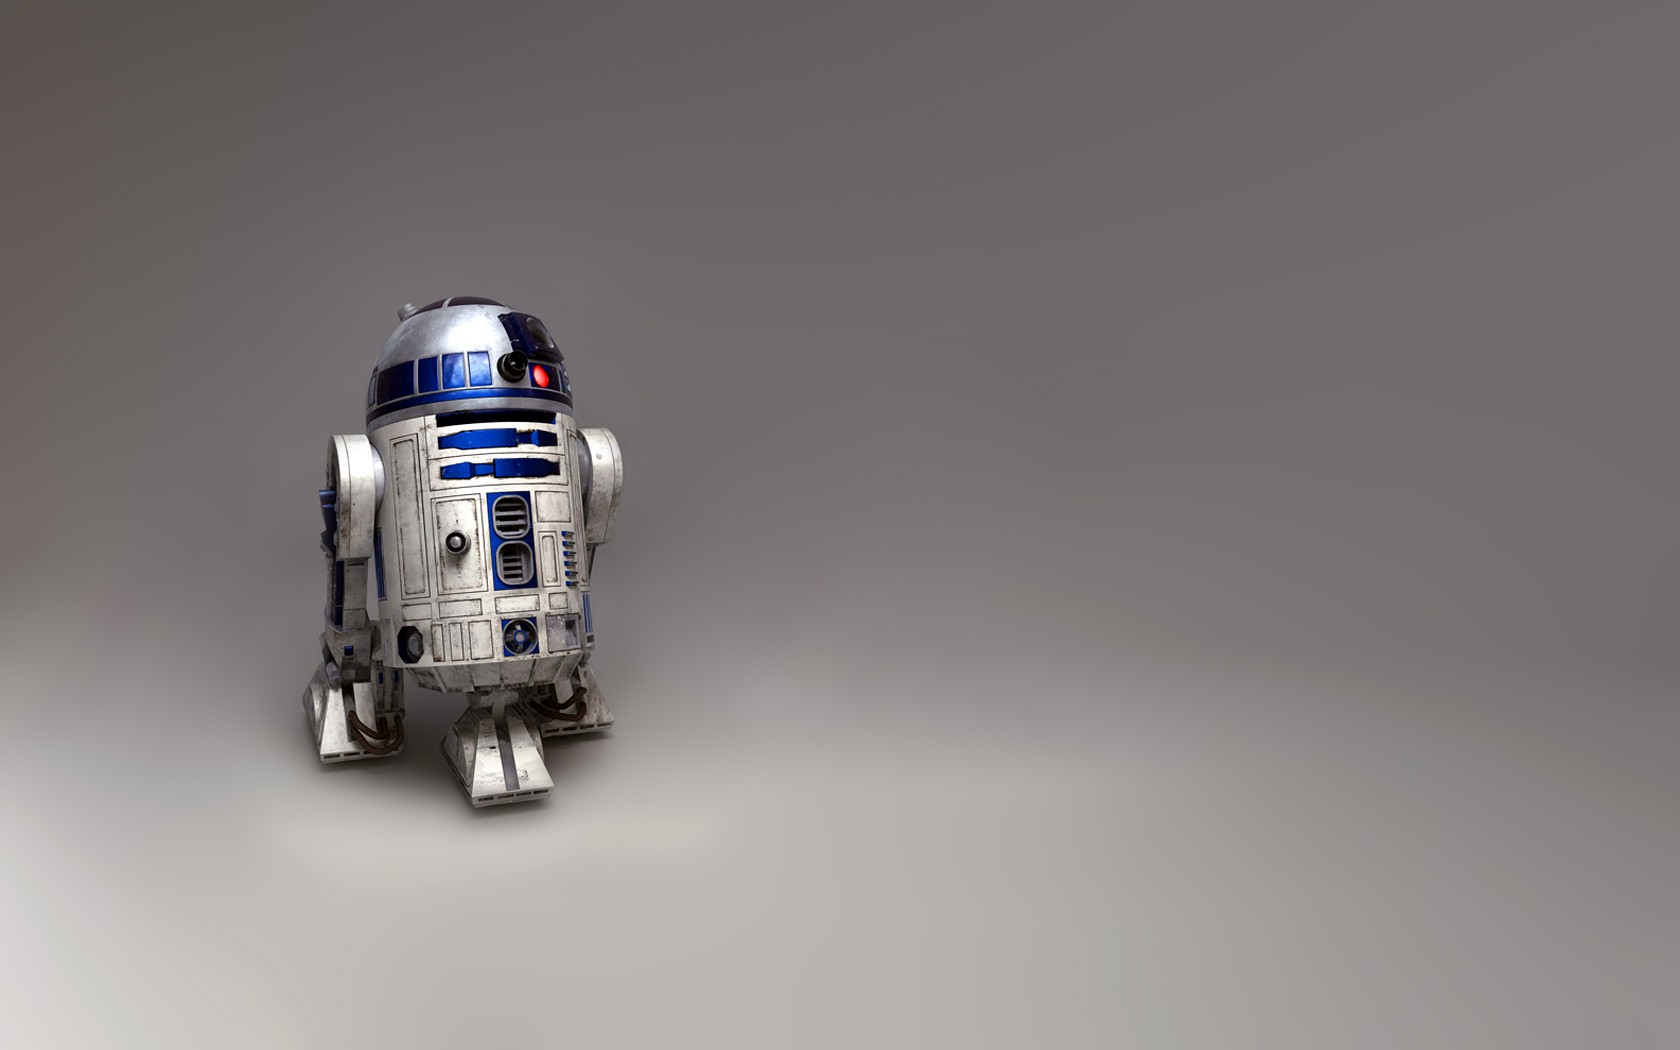 Star Wars, R2 D2 Wallpaper